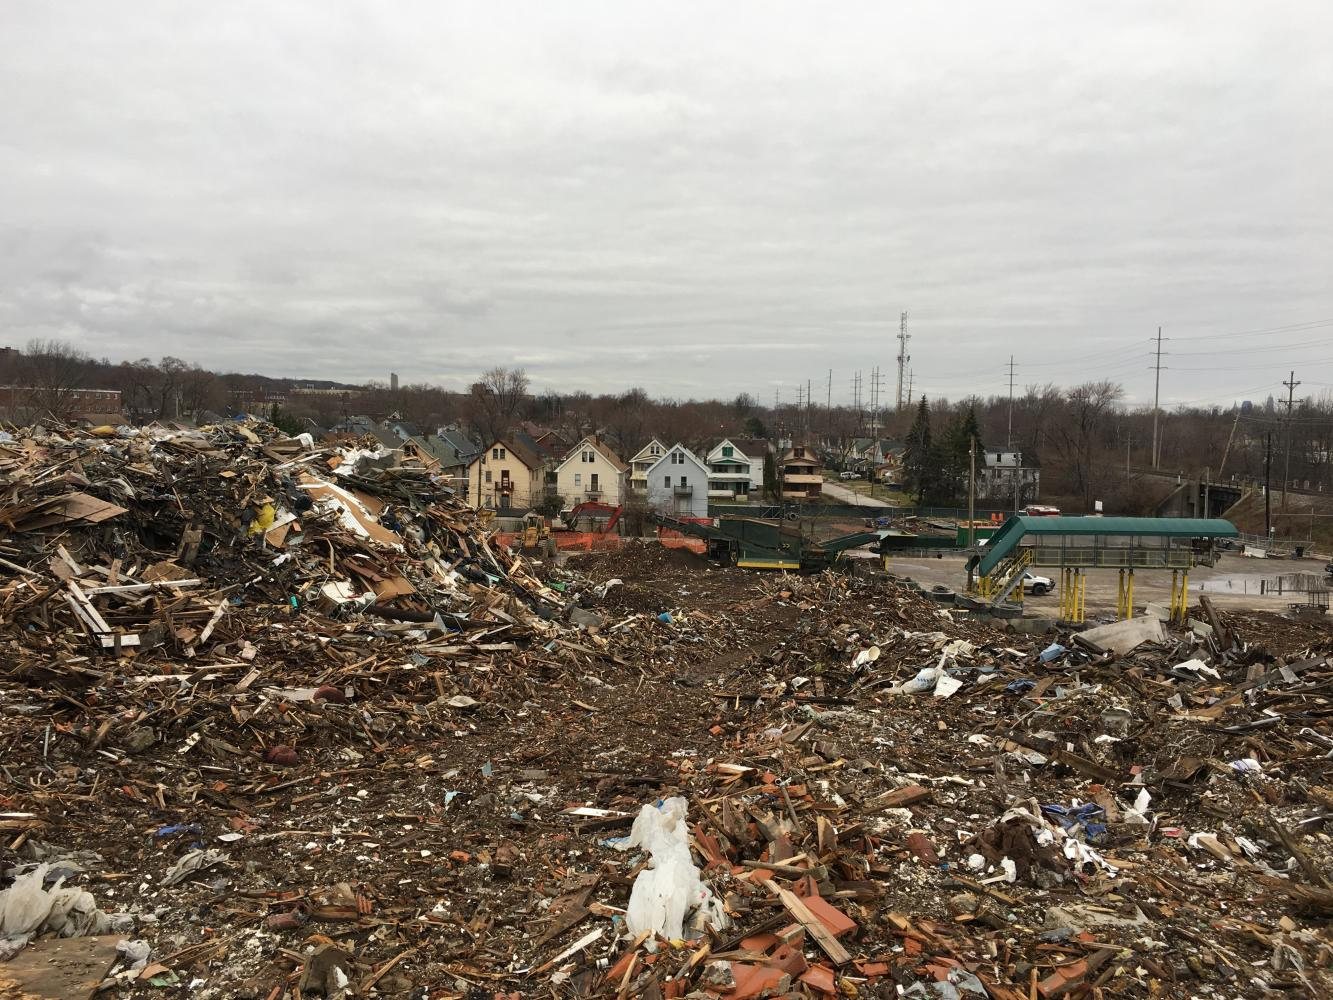 The Noble Road waste dump was supposed to be the location of a recycling facility, but has instead been the site of a contruction waste dump that has negatively impacted the health of Cleveland residents.